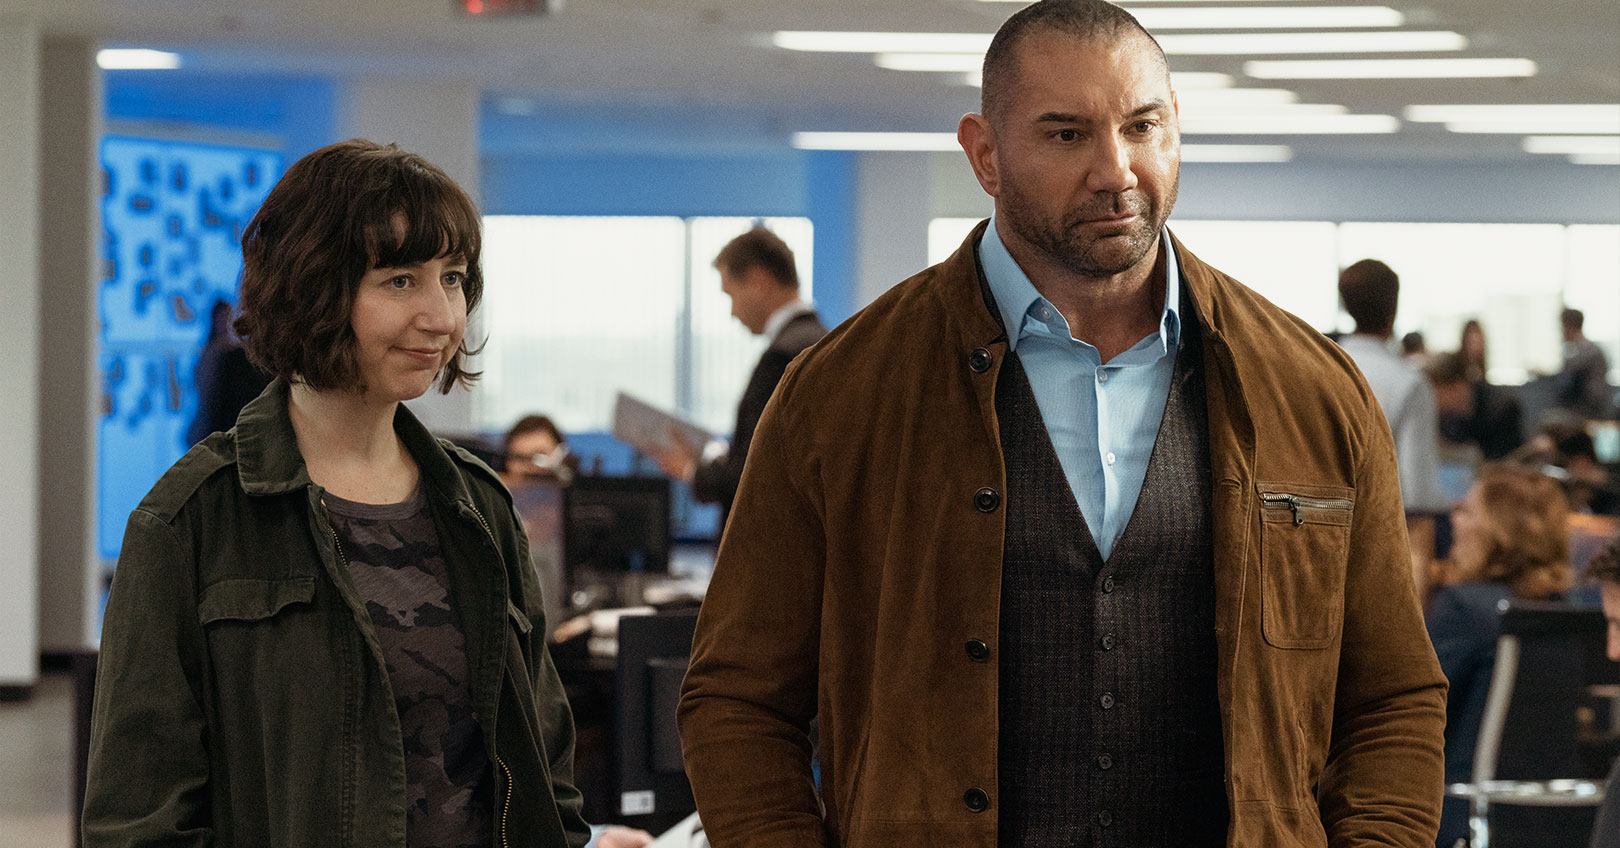 My Spy - Kristen Schaal and Dave Bautista